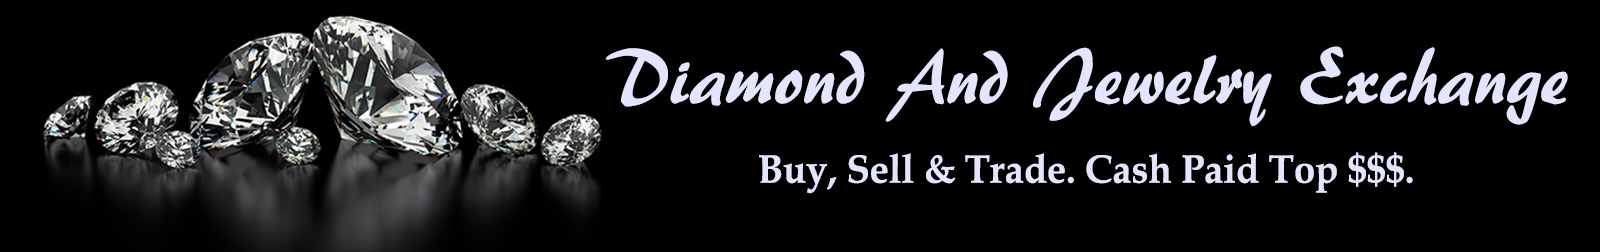 95f0f986e4110 Home - Diamond And Jewelry Exchange